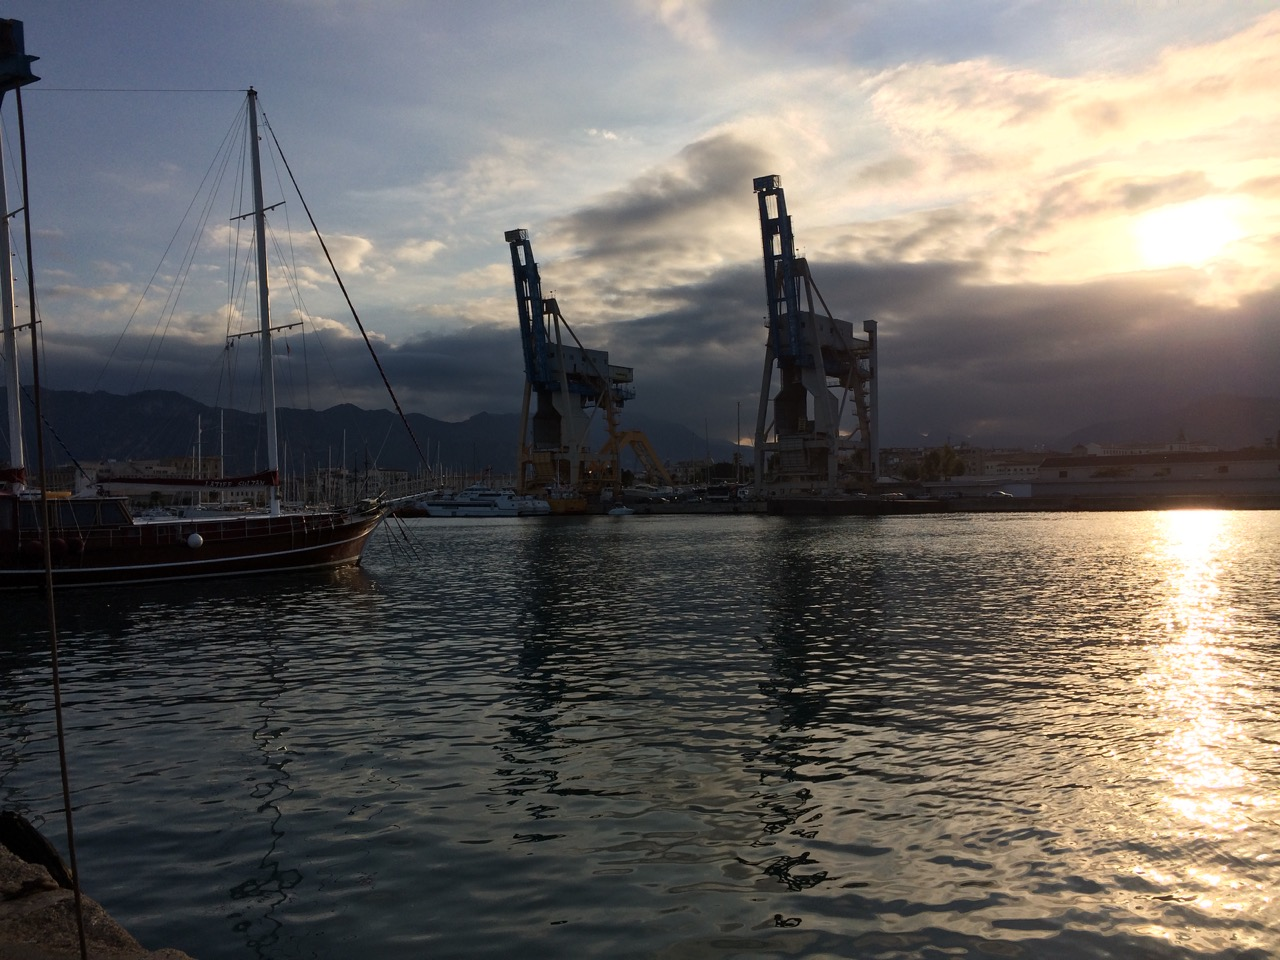 Sunset at the port of Palermo